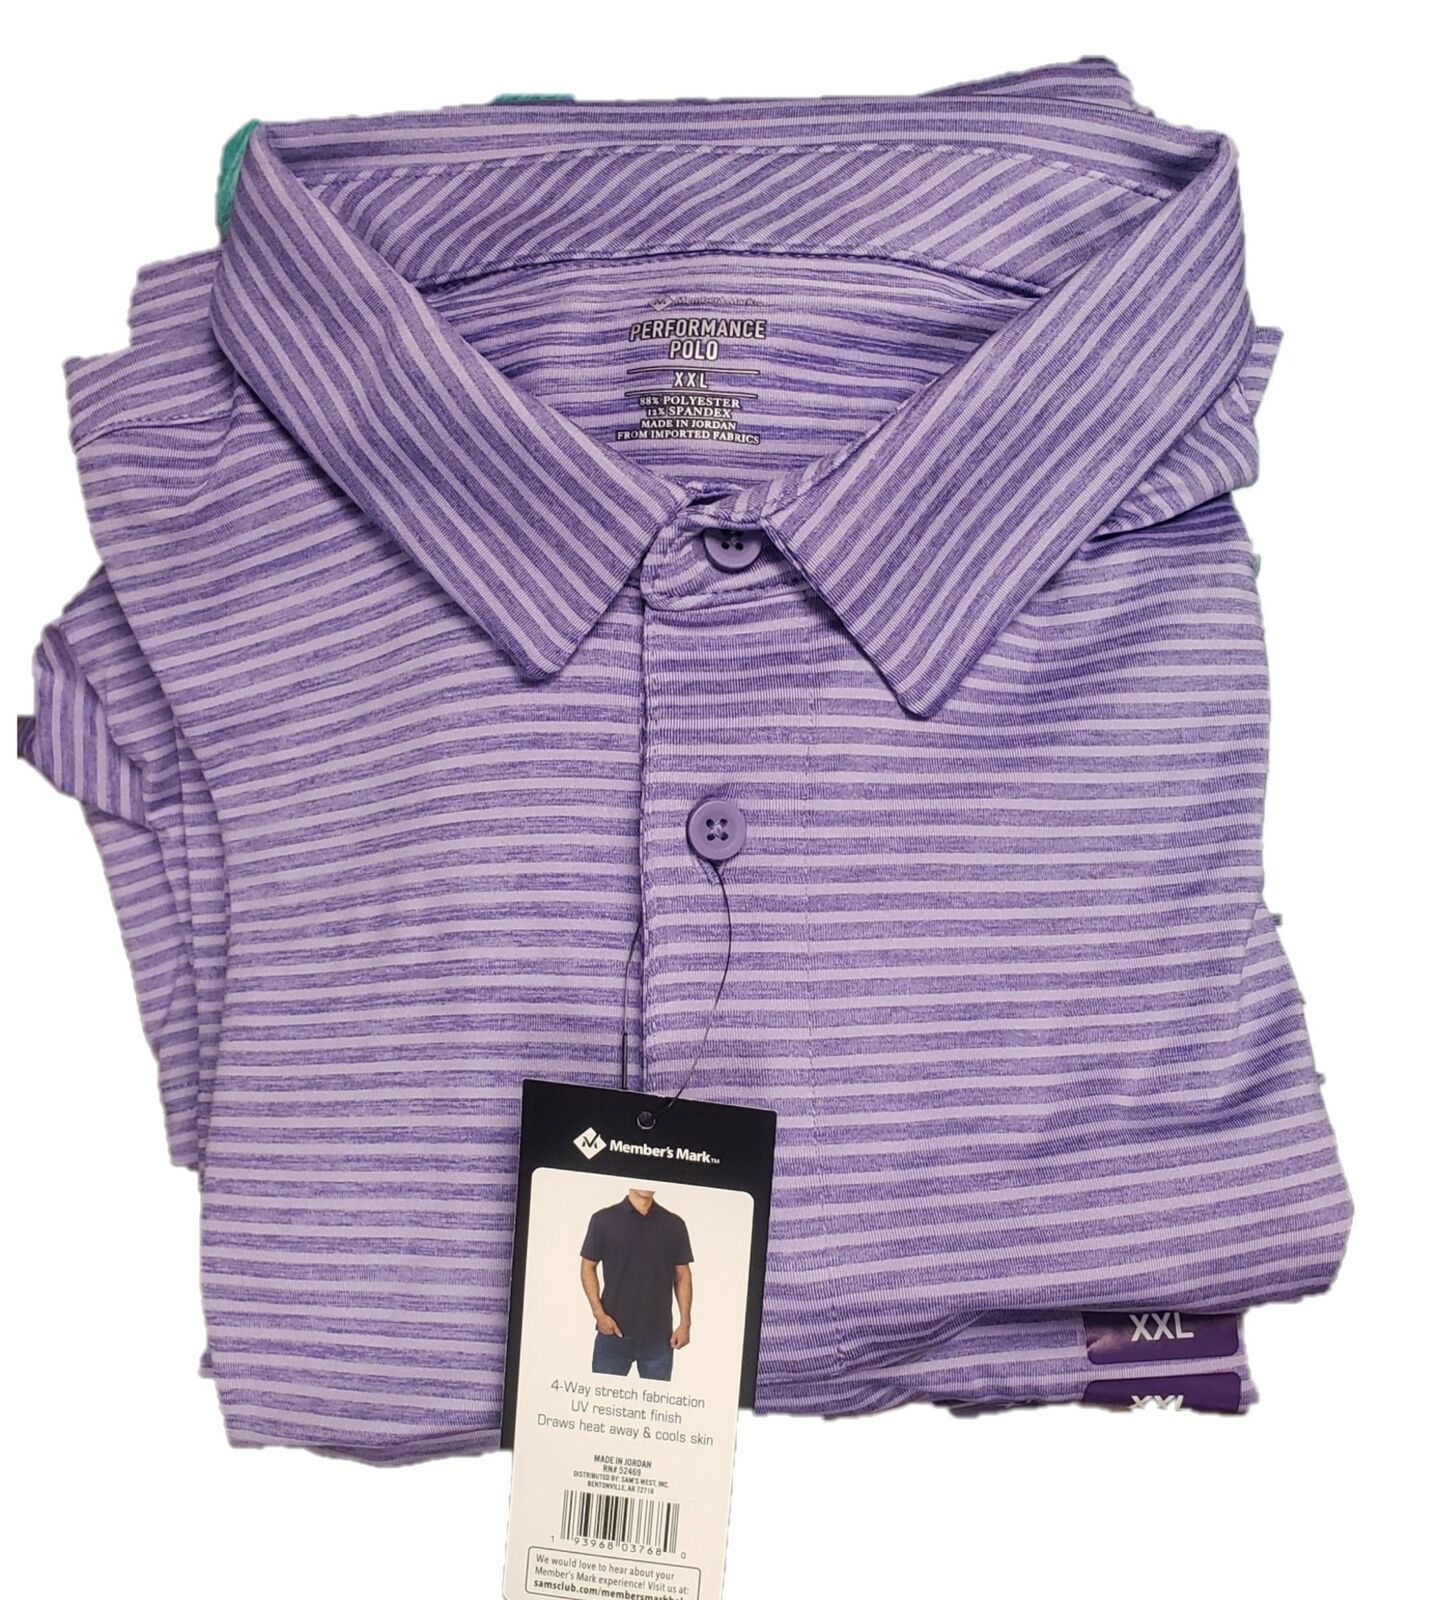 Members Mark Striped Performance Polo Purple Men\\\'s Size XXL